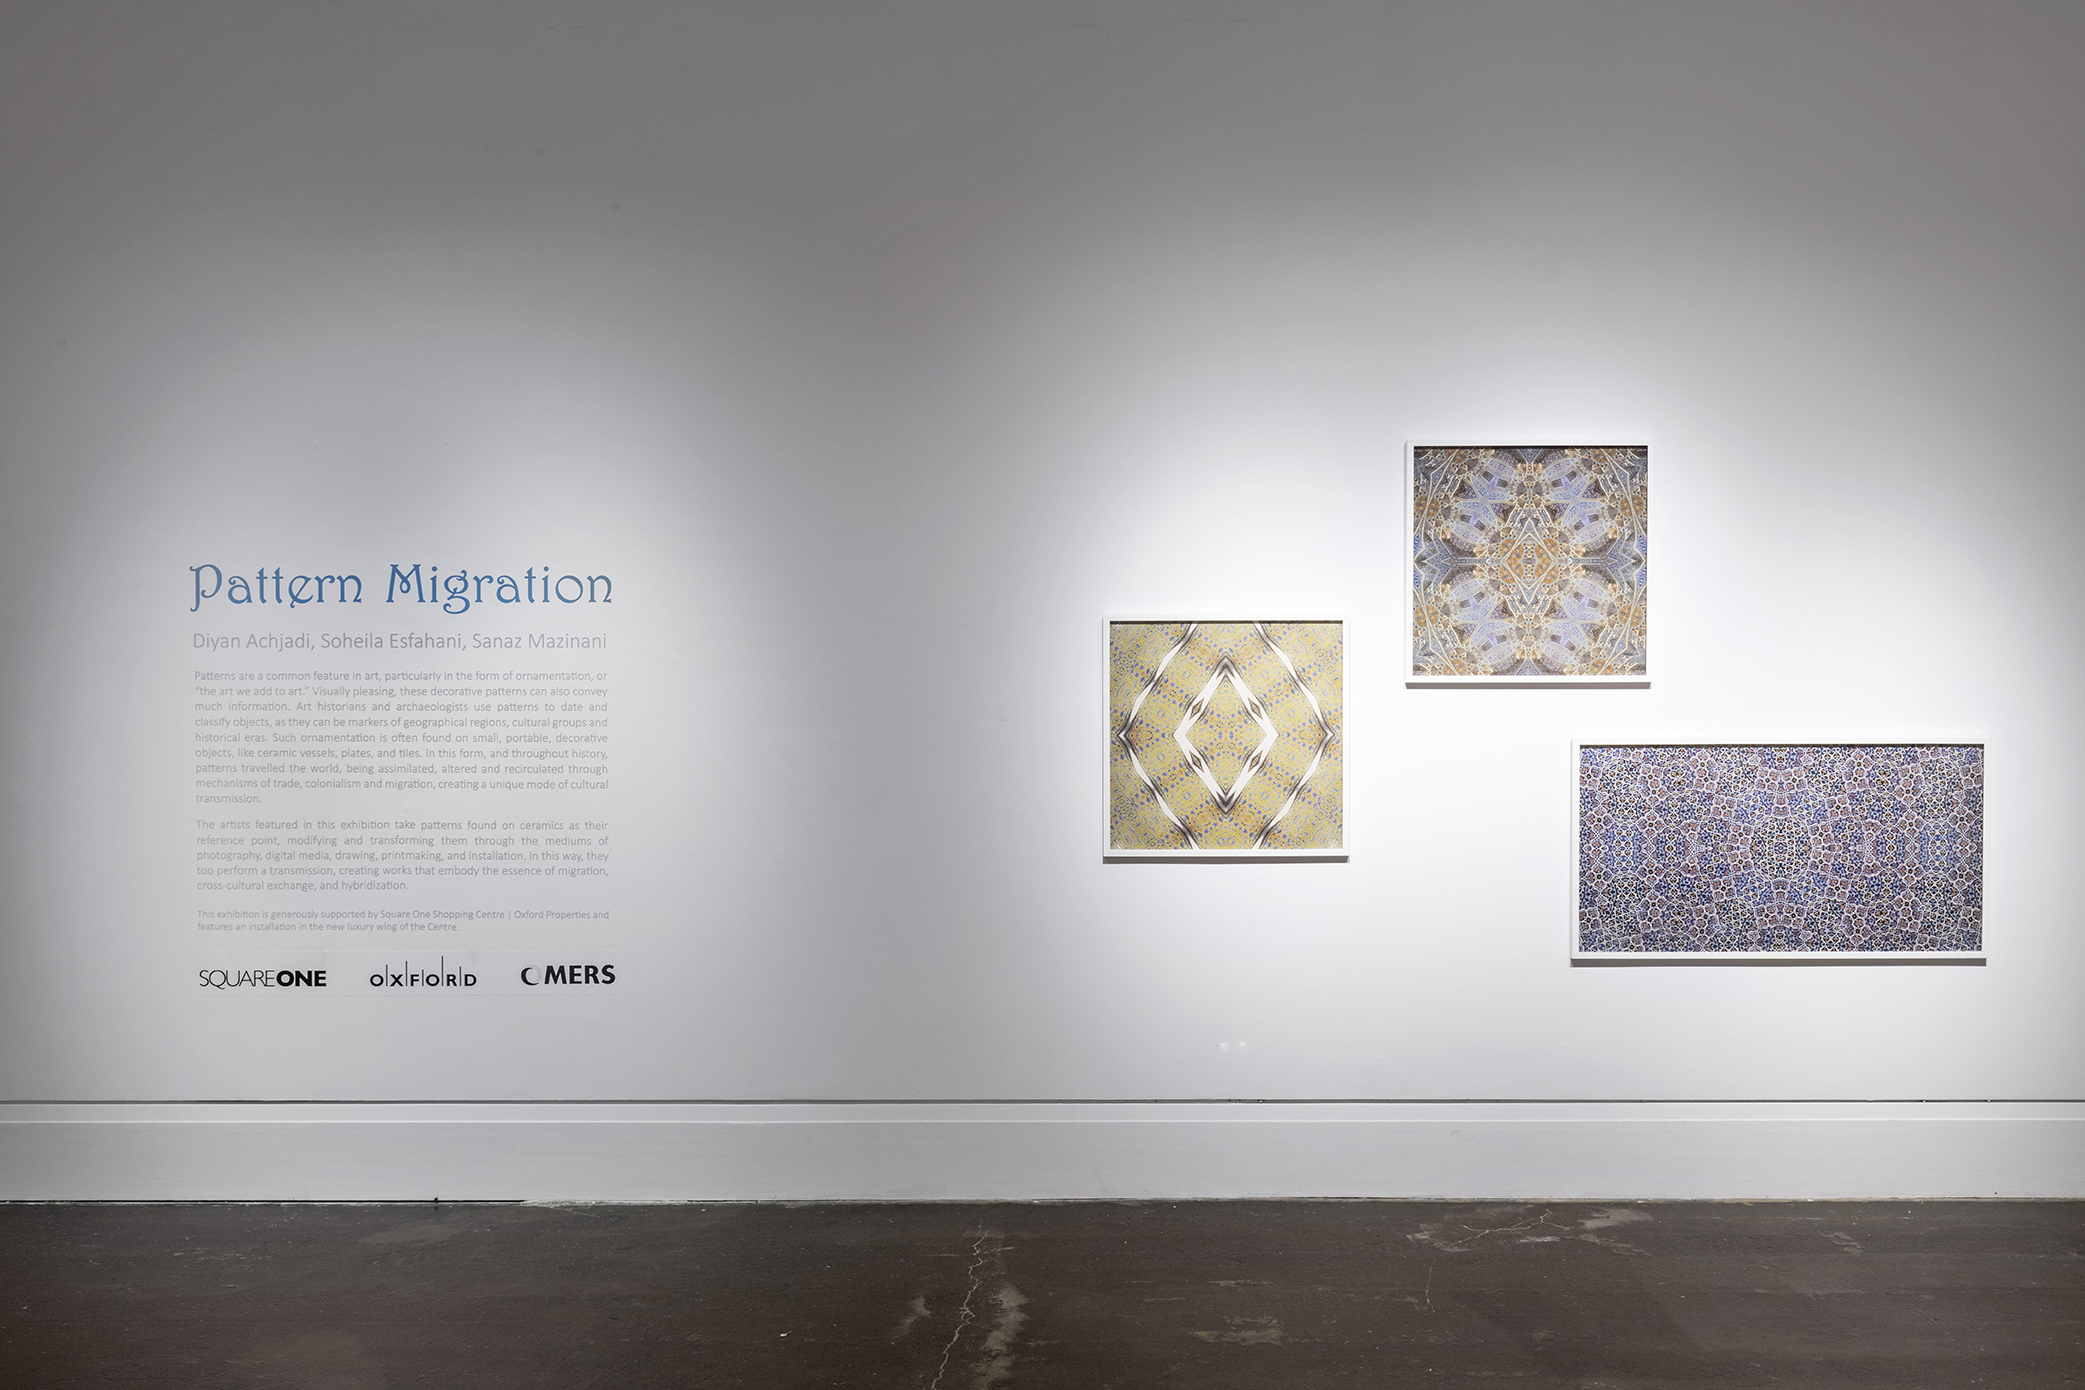 Pattern Migration . Main Gallery, Art Gallery of Mississauga. Photo by Toni Hafkensheid.